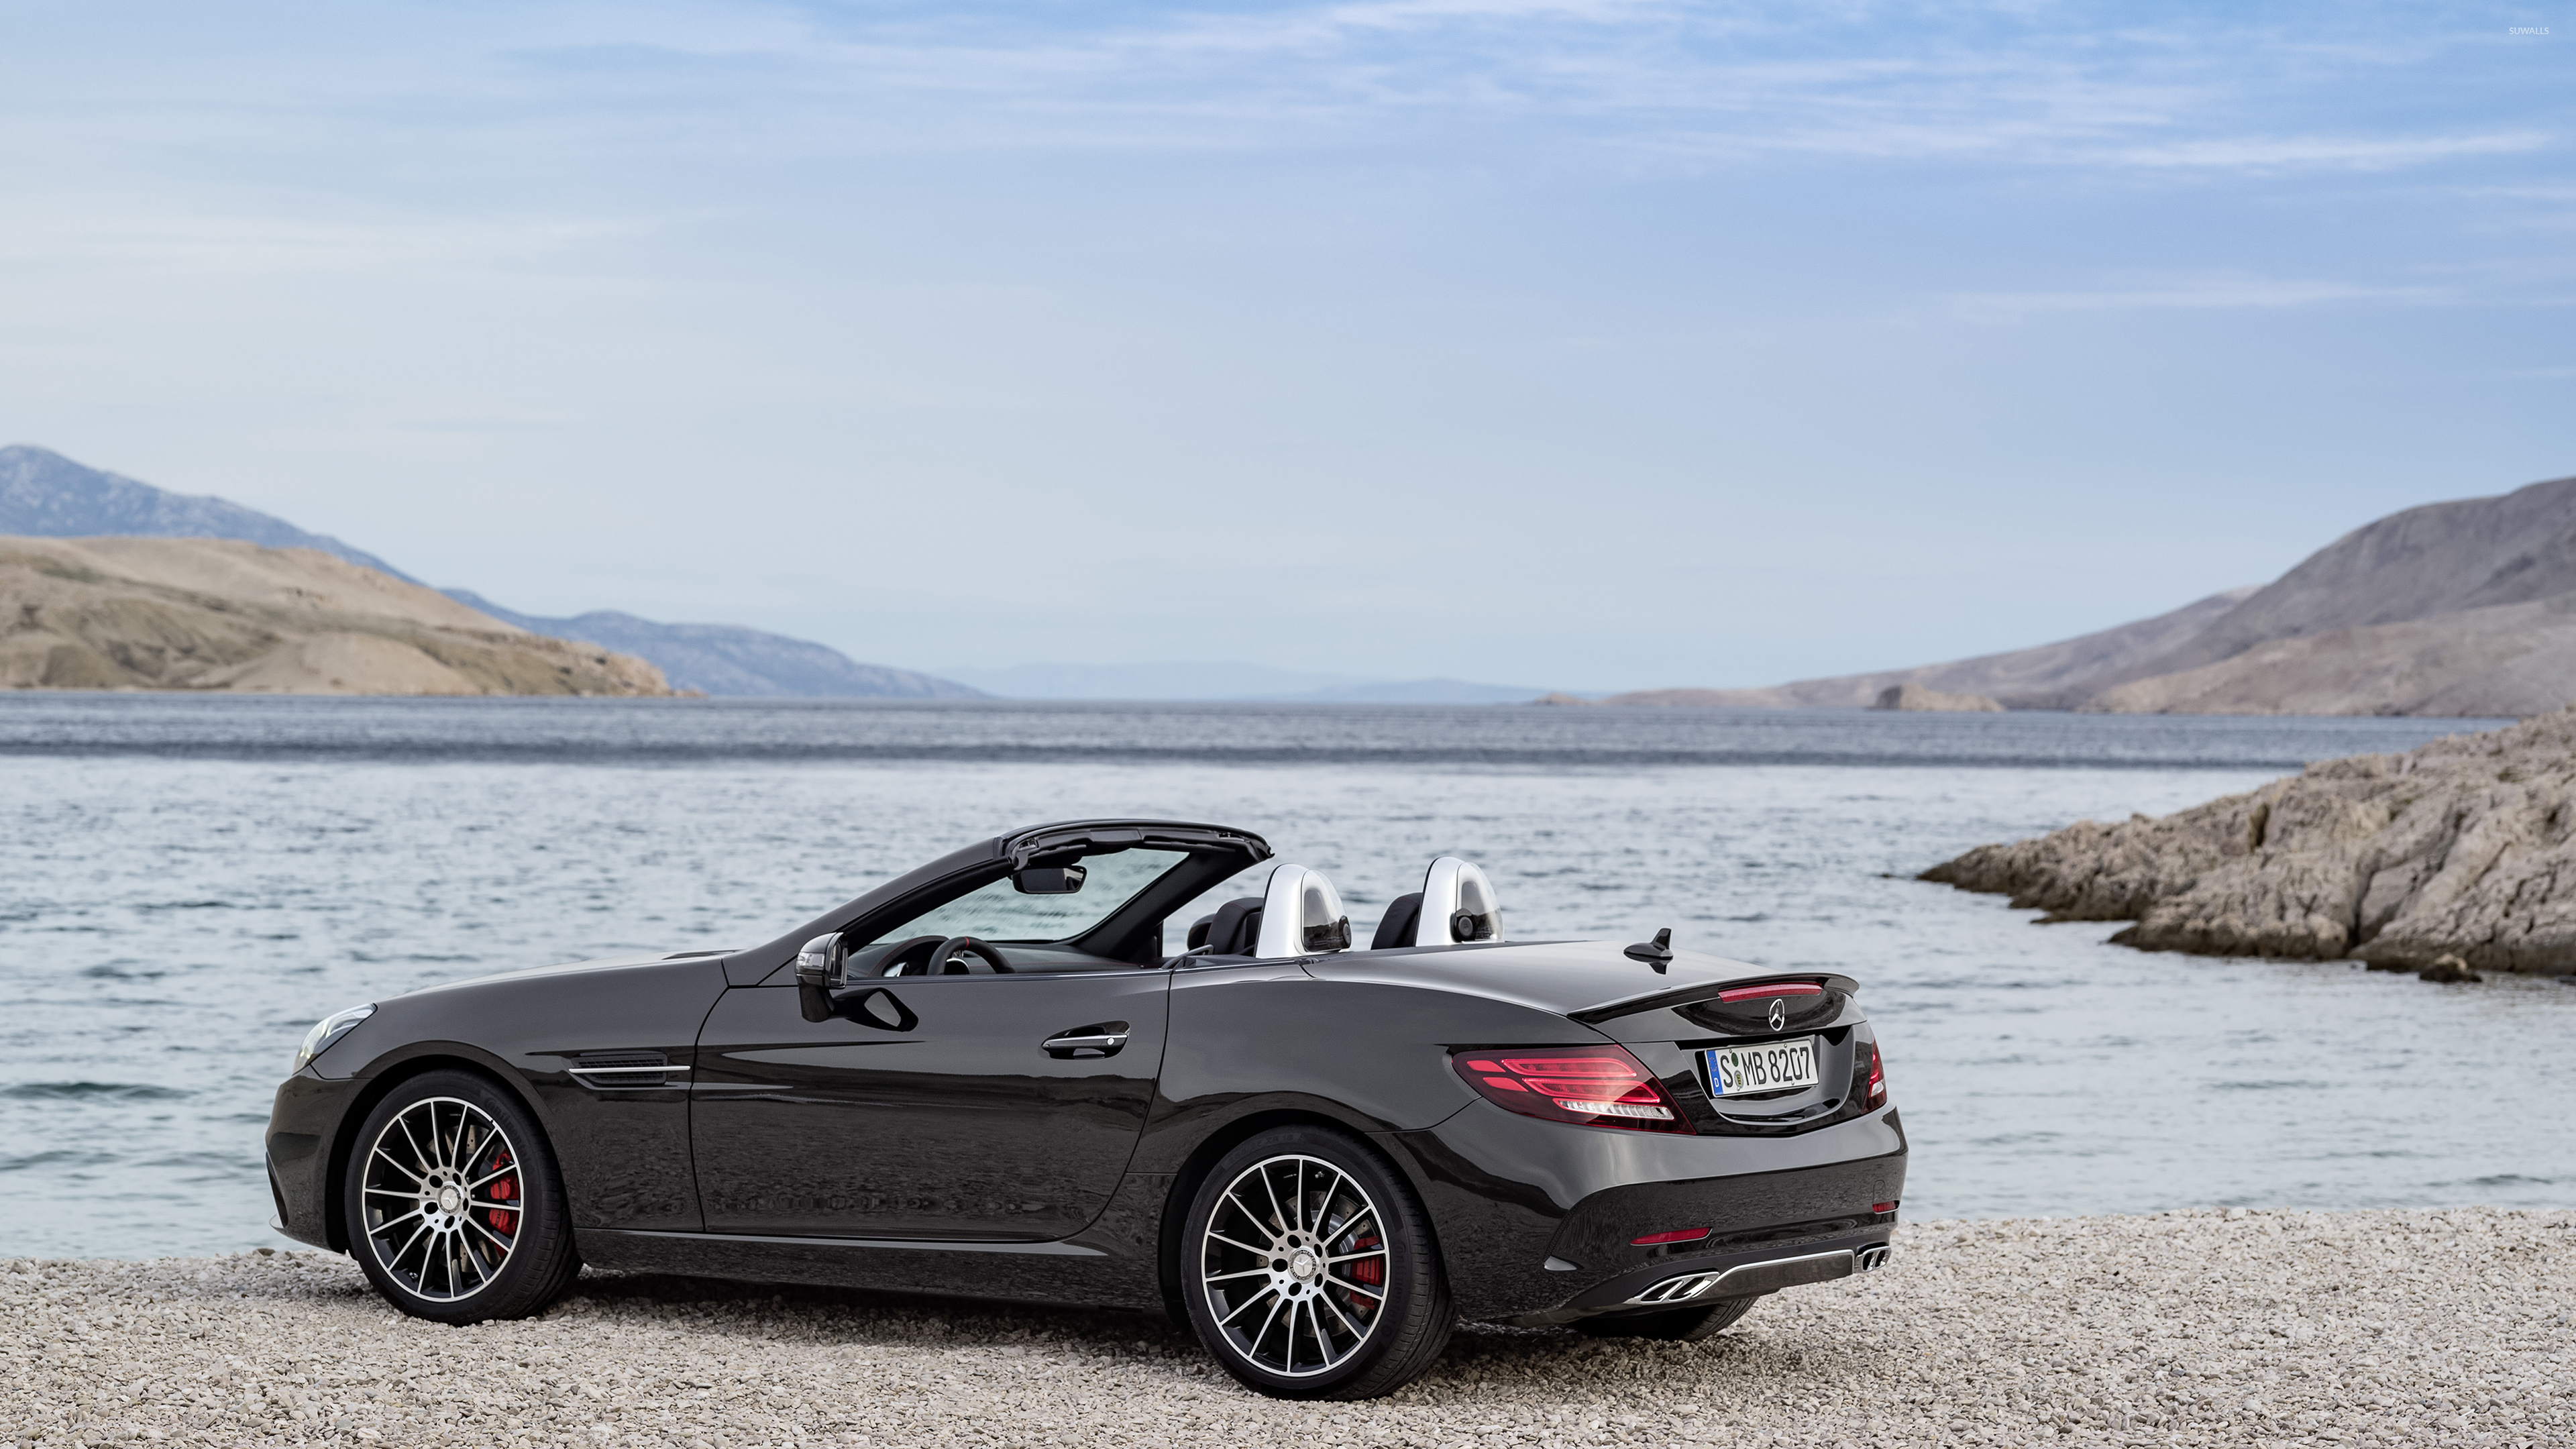 2017 Mercedes AMG SLC 43 back side view wallpaper   Car 3840x2160